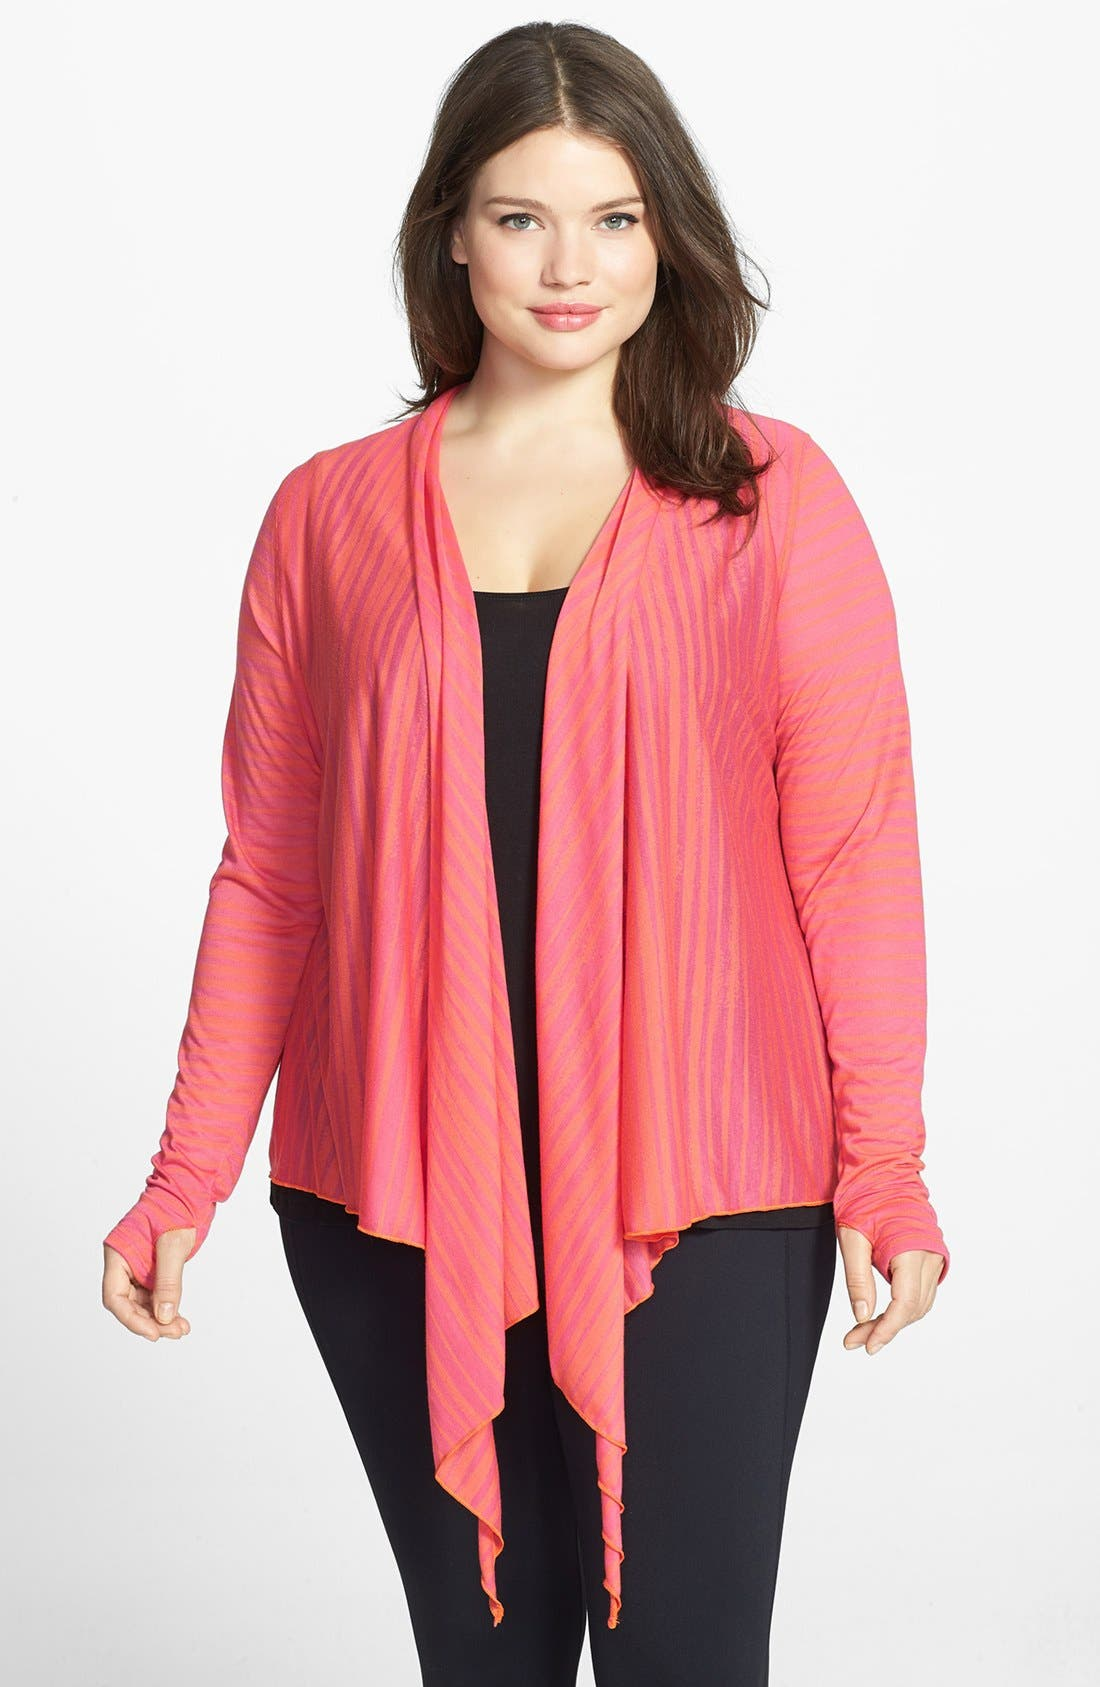 Alternate Image 1 Selected - Moving Comfort 'Flaunt It' Wrap Cardigan (Plus Size)